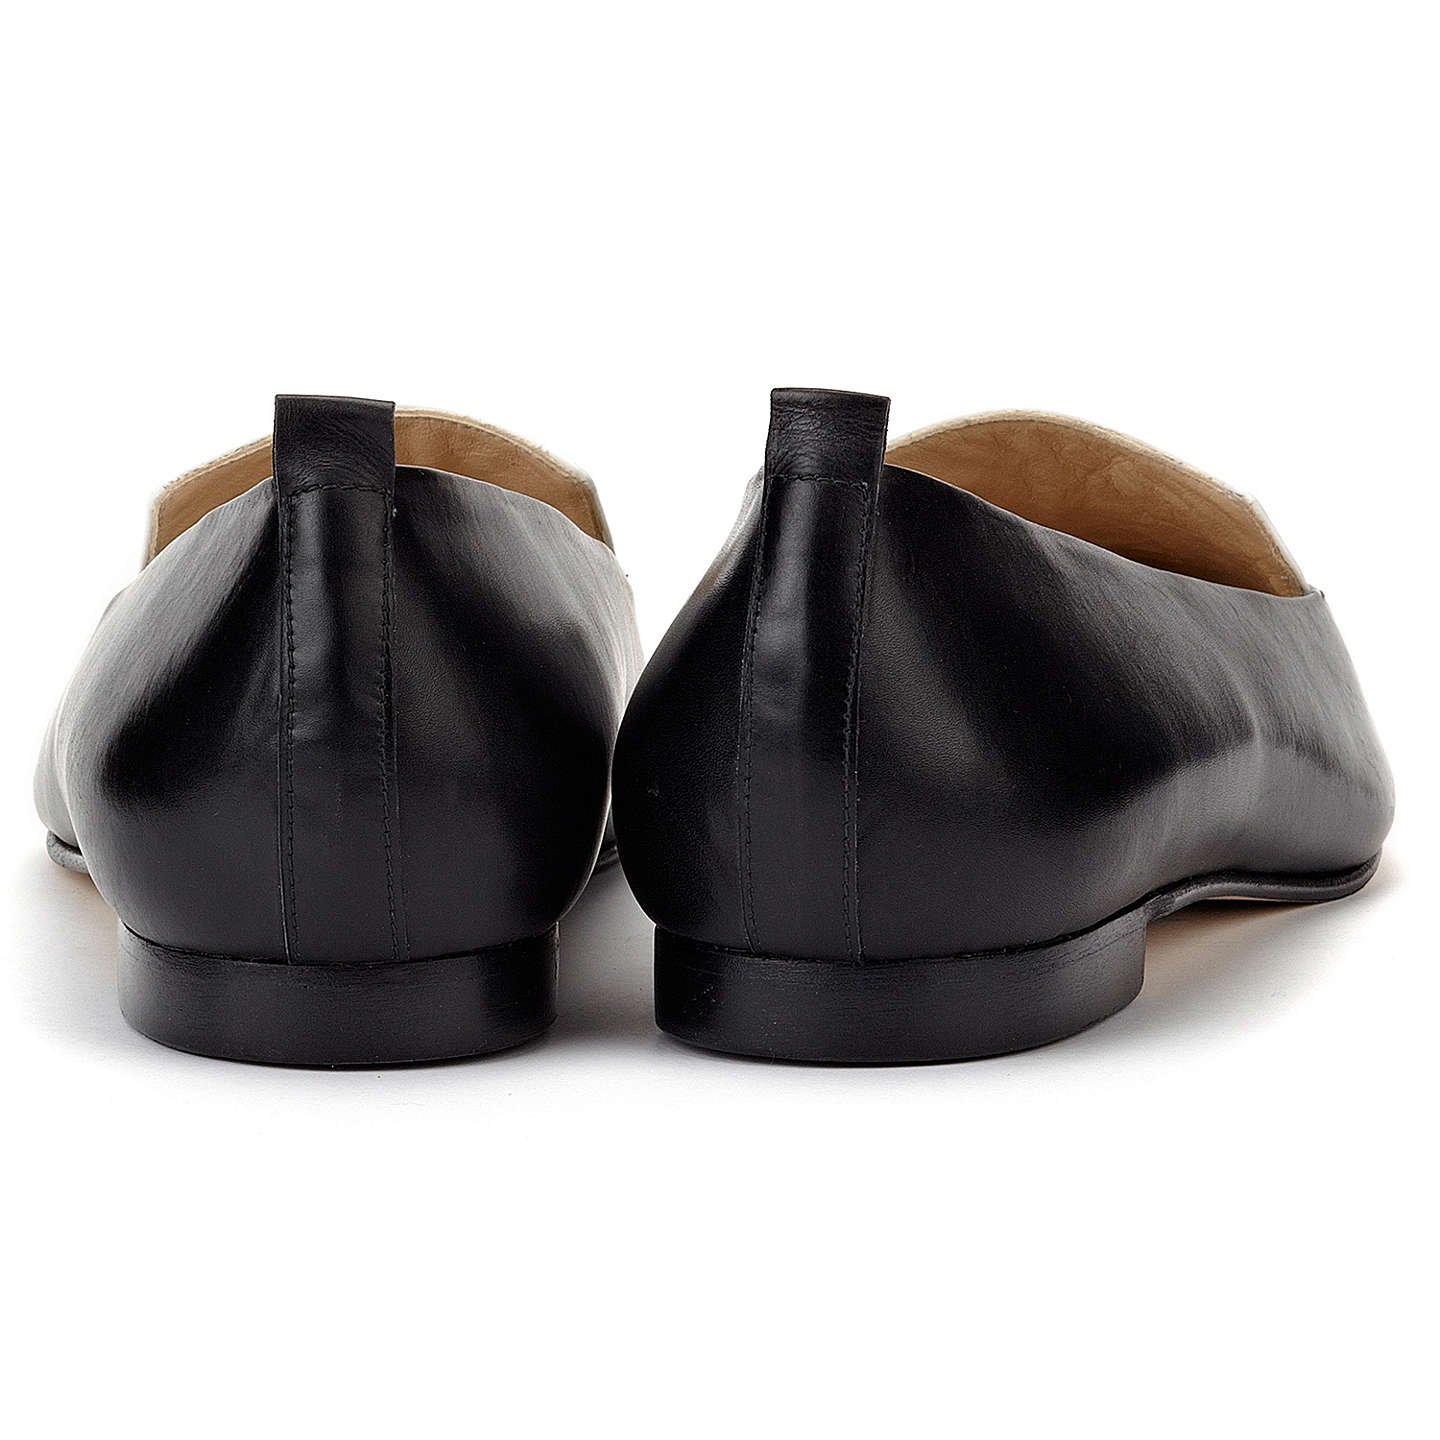 BuyWhistles Lexie Pointed Leather Loafers, Black / White, 3 Online at johnlewis.com